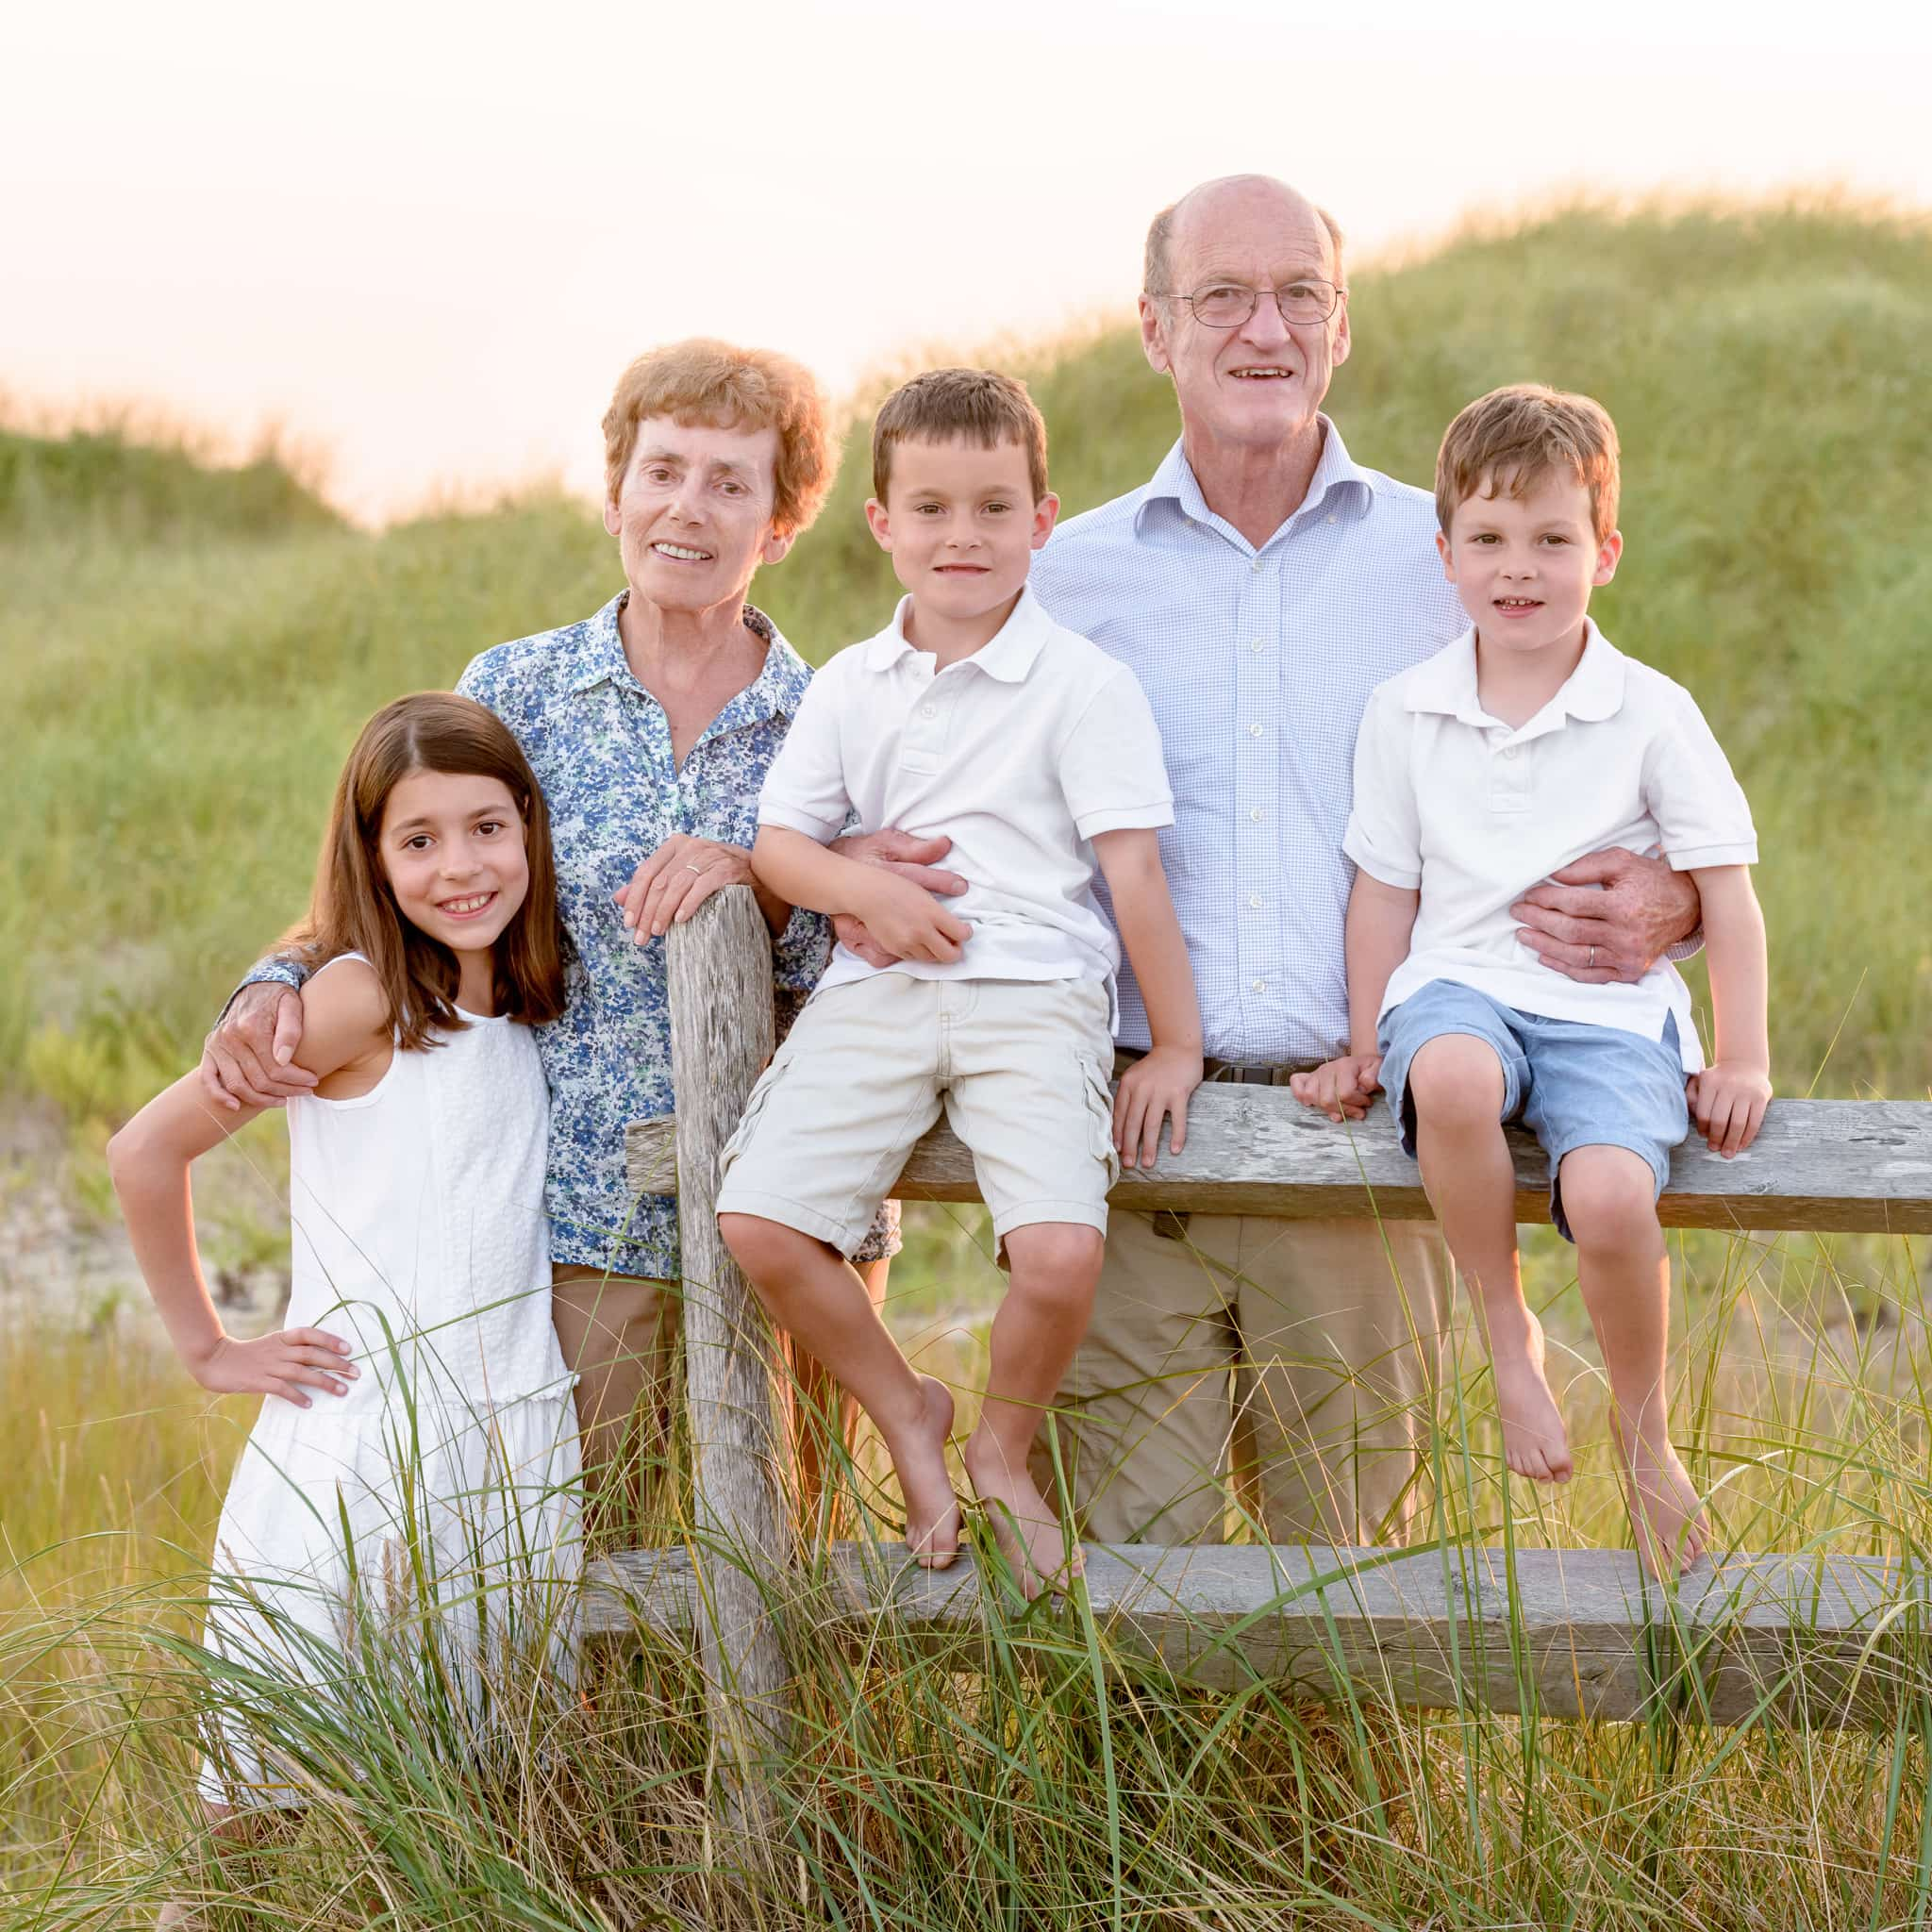 Cape Cod Family Portrait On The Beach While On Your Summer